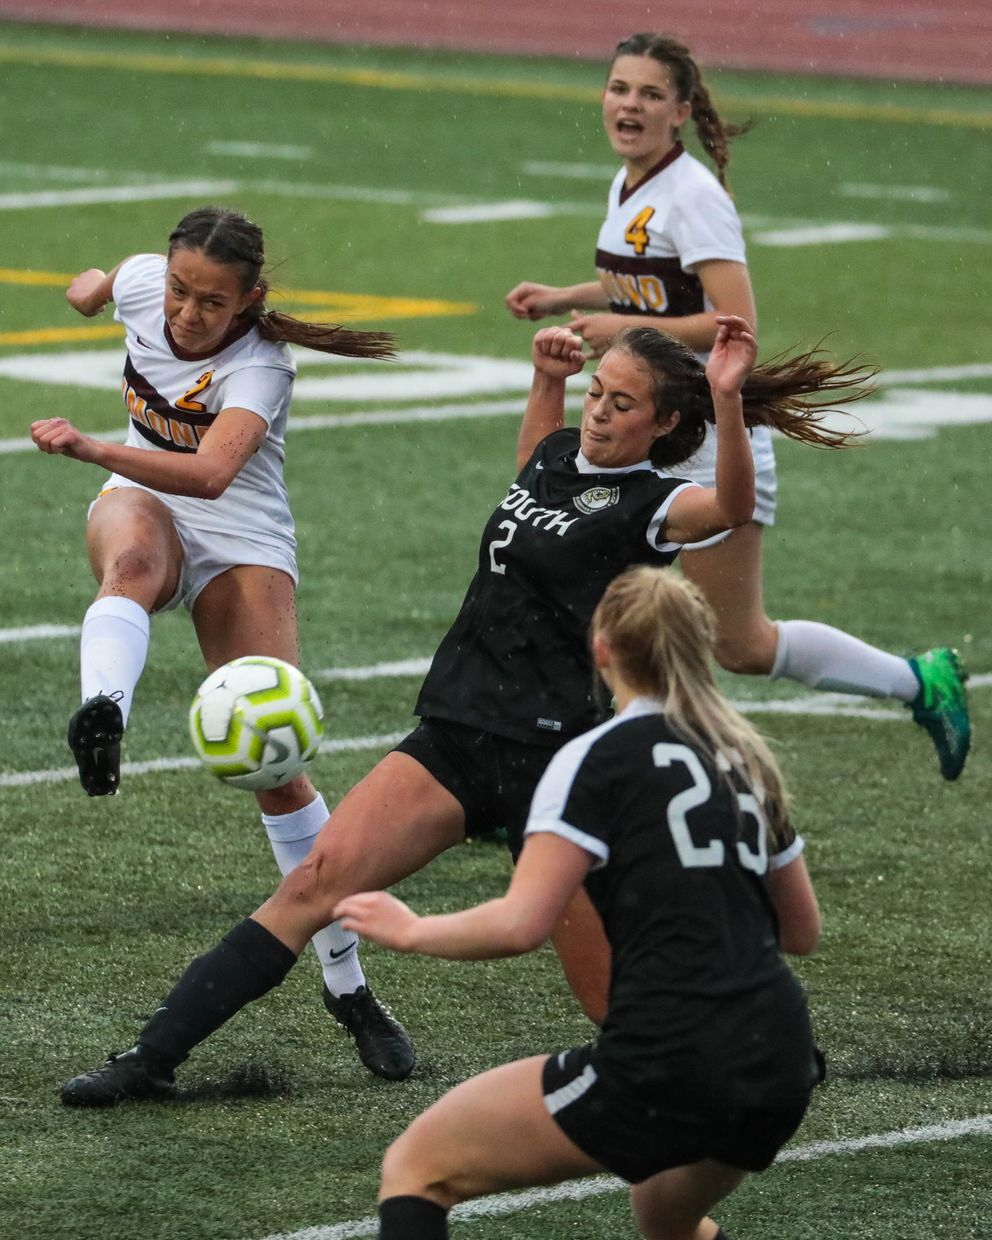 Dimond senior Madison Childers kicks the ball past South defenders Grace Chartier and Olivia Schuster. (Loren Holmes / ADN)